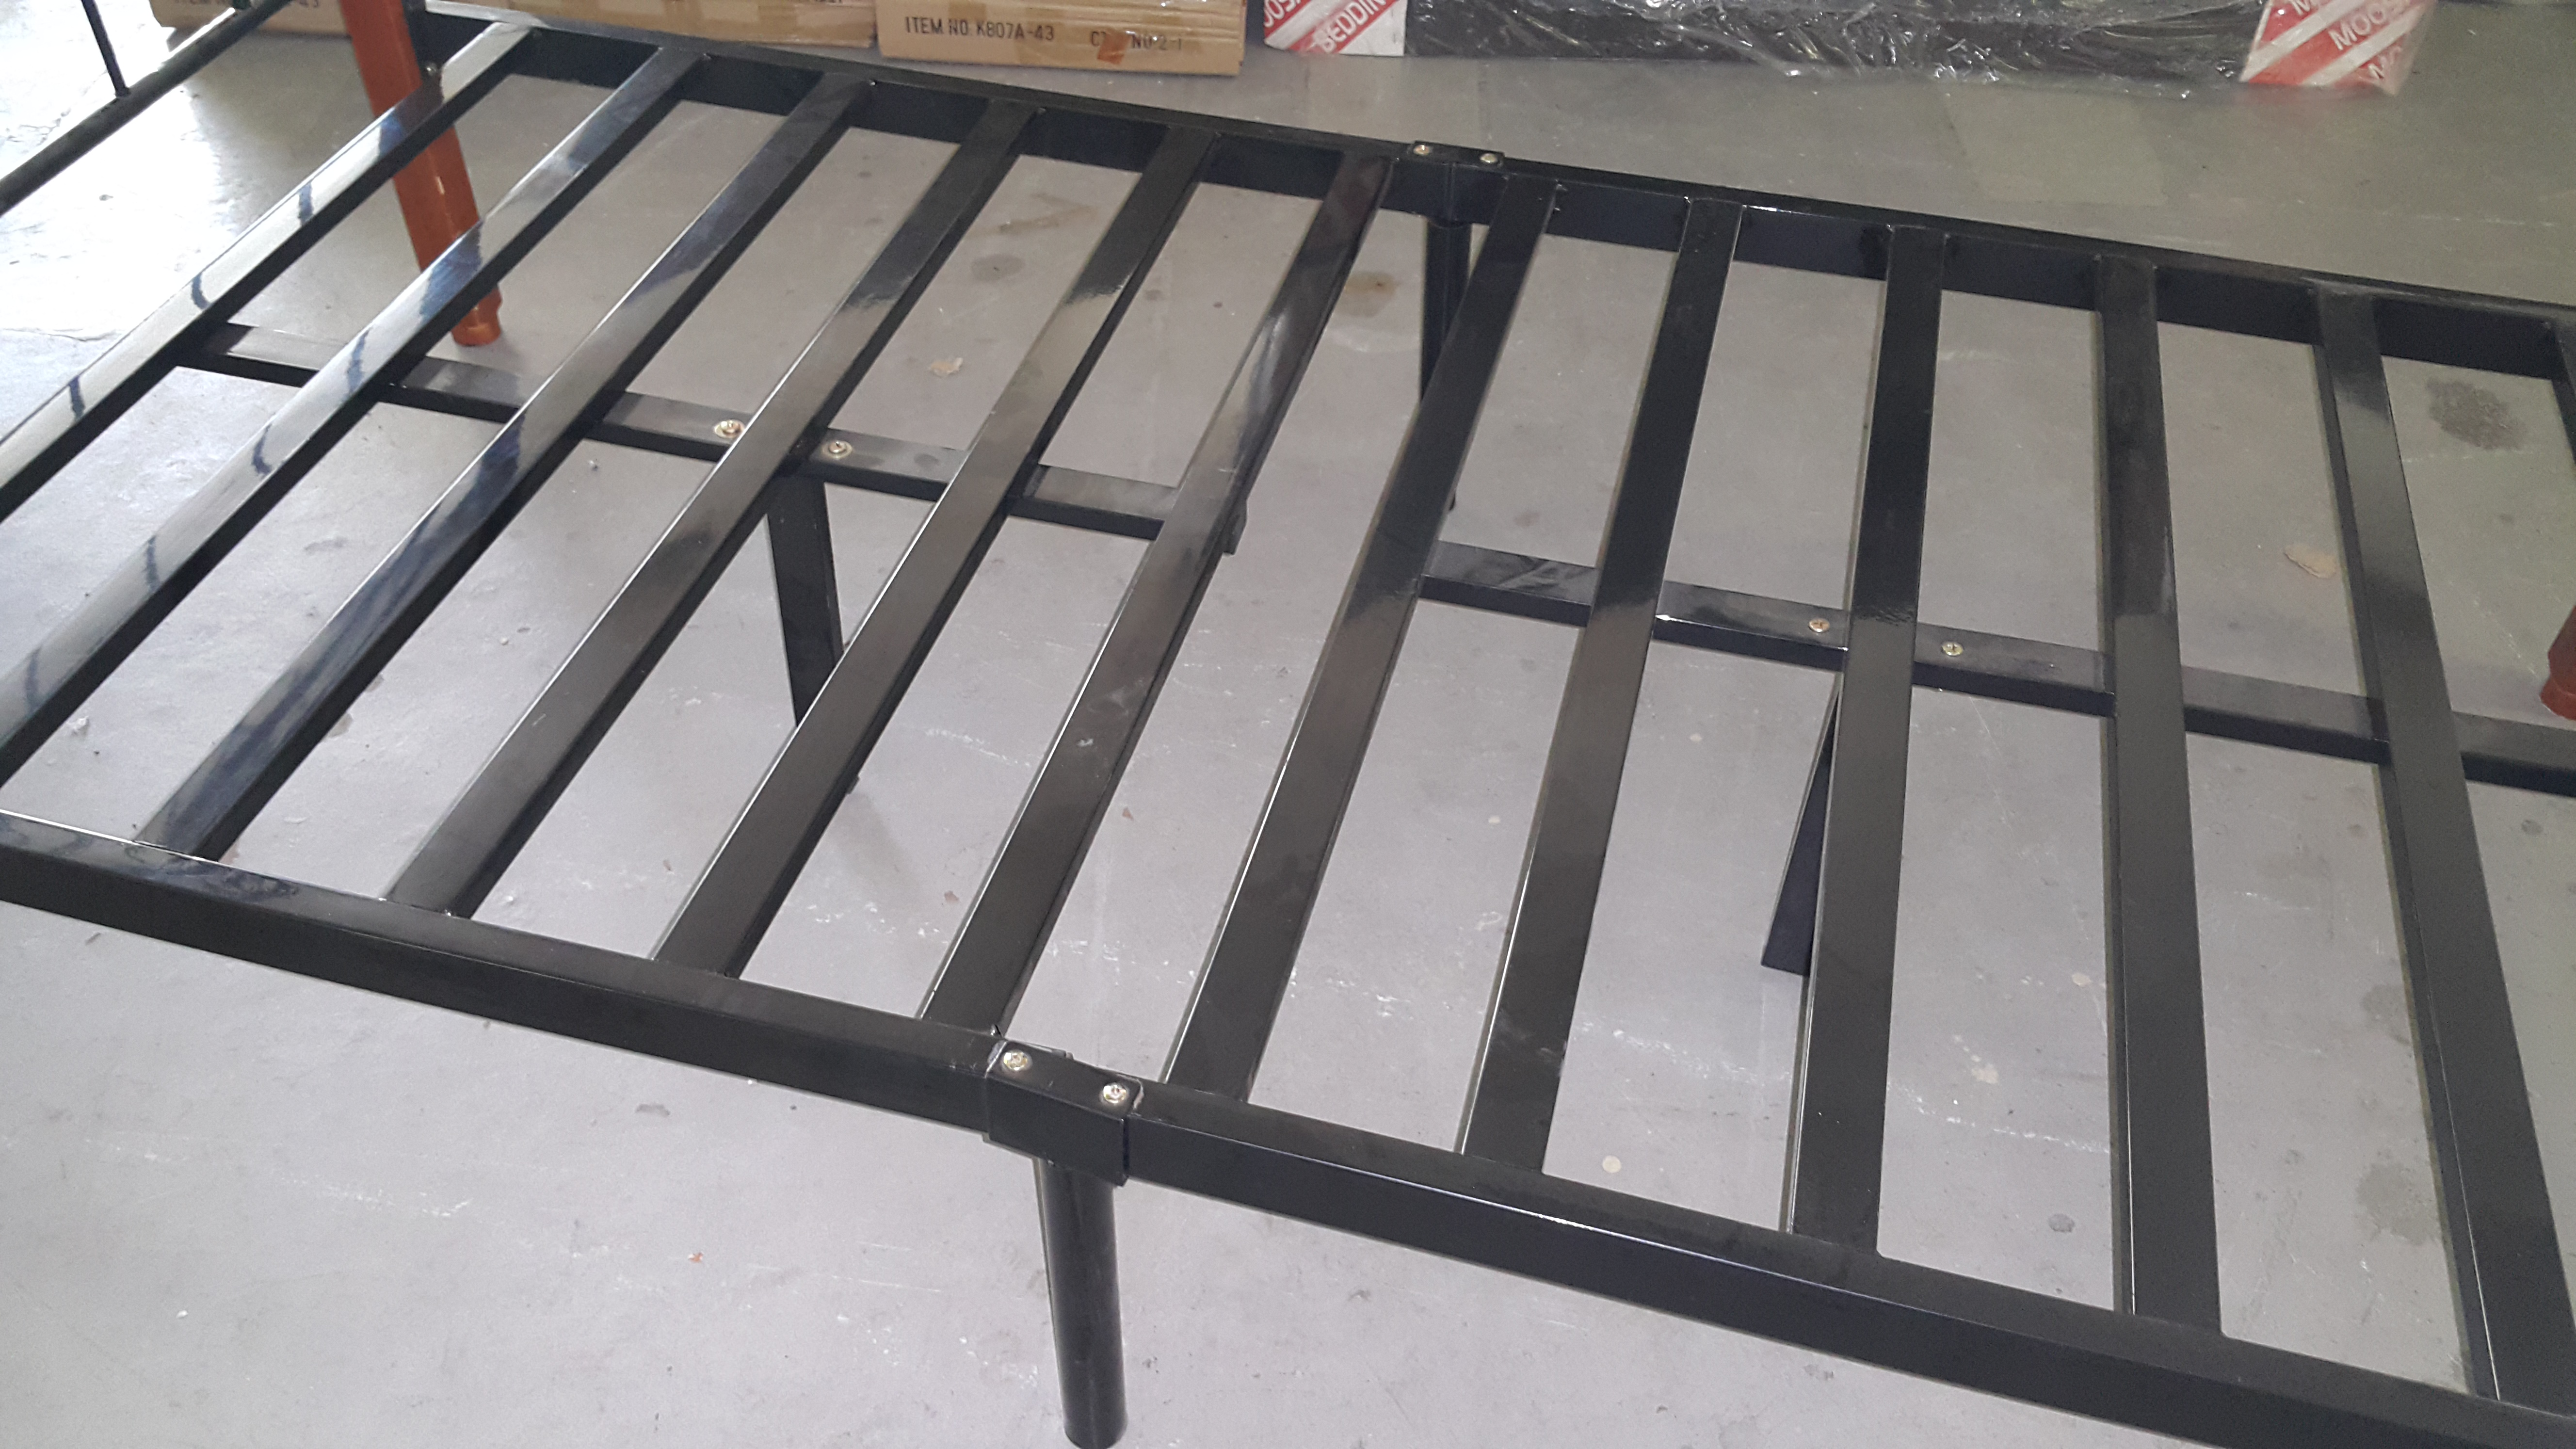 Reinforced Single Bed Base with Extra Support Legs